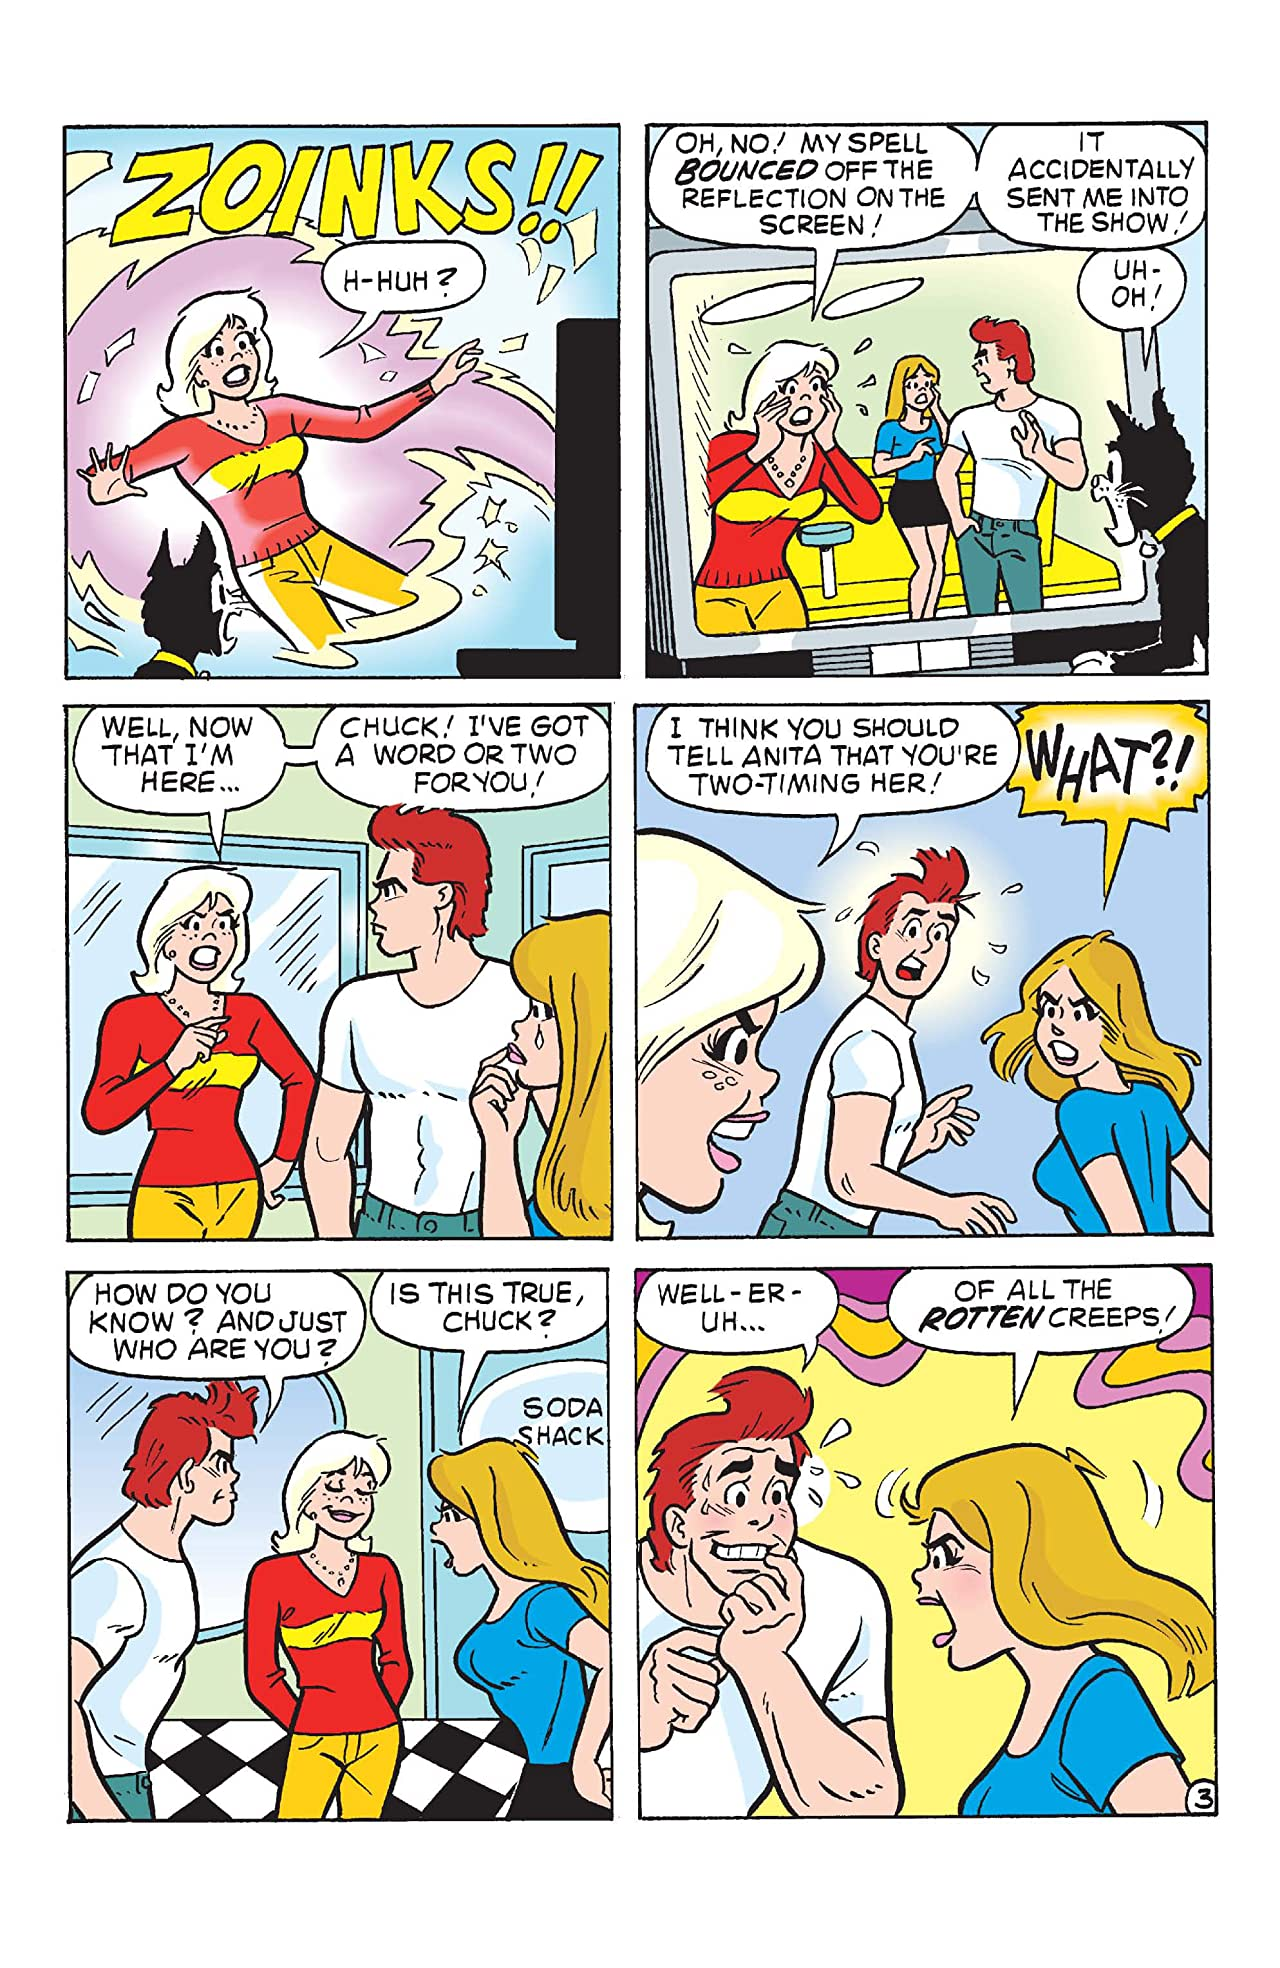 Sabrina the Teenage Witch #8